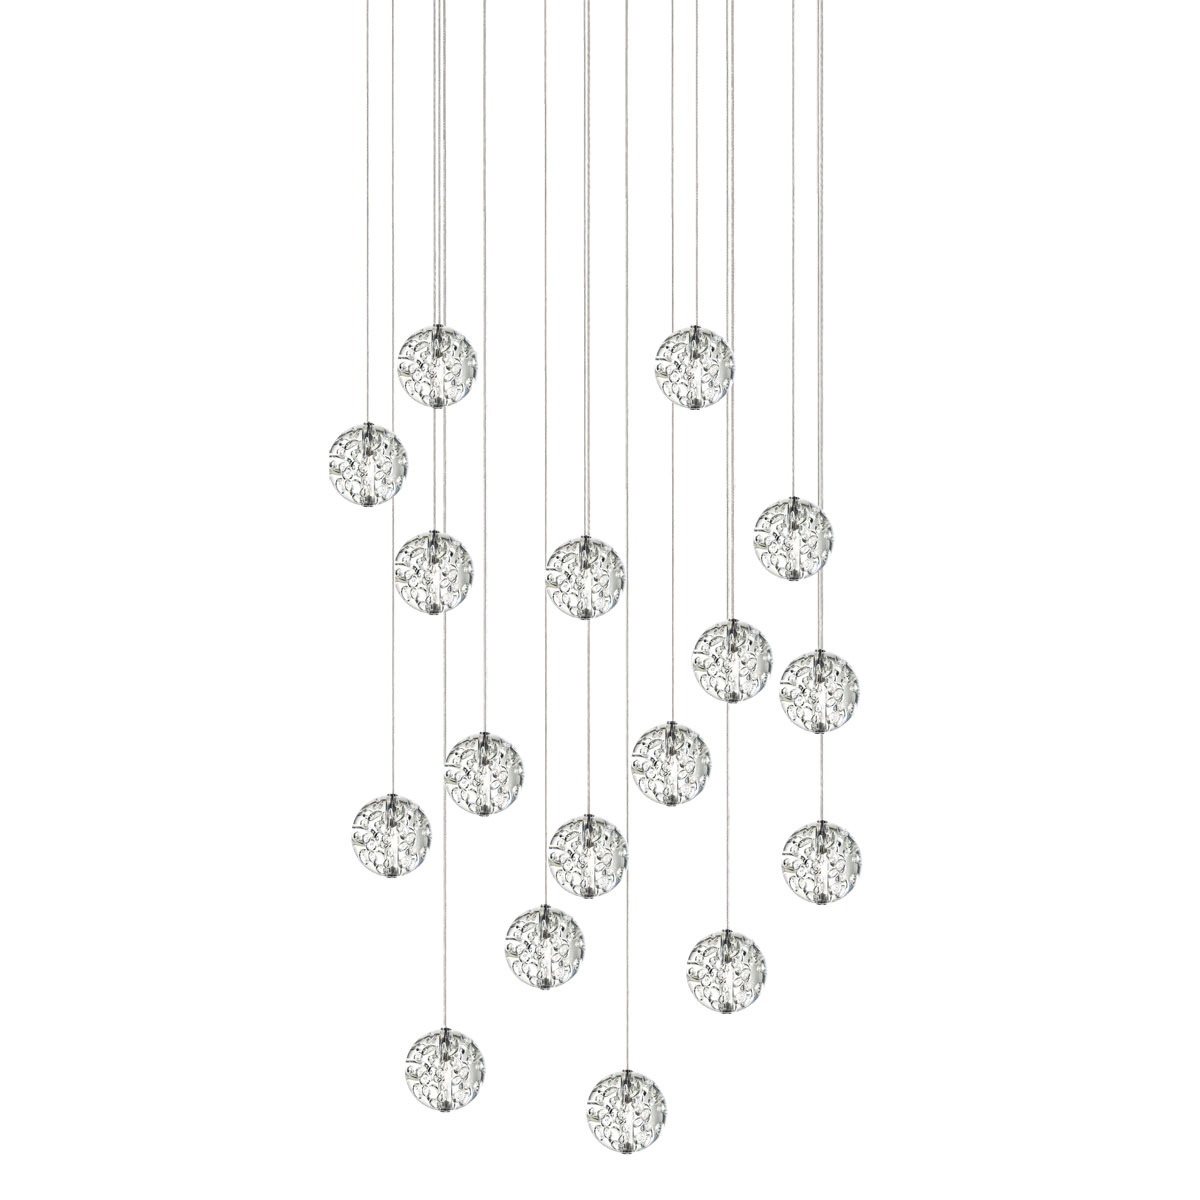 Bubble ball 17 light linear led pendant by pureedge lighting 33re 17 bbcl27 10ft sn